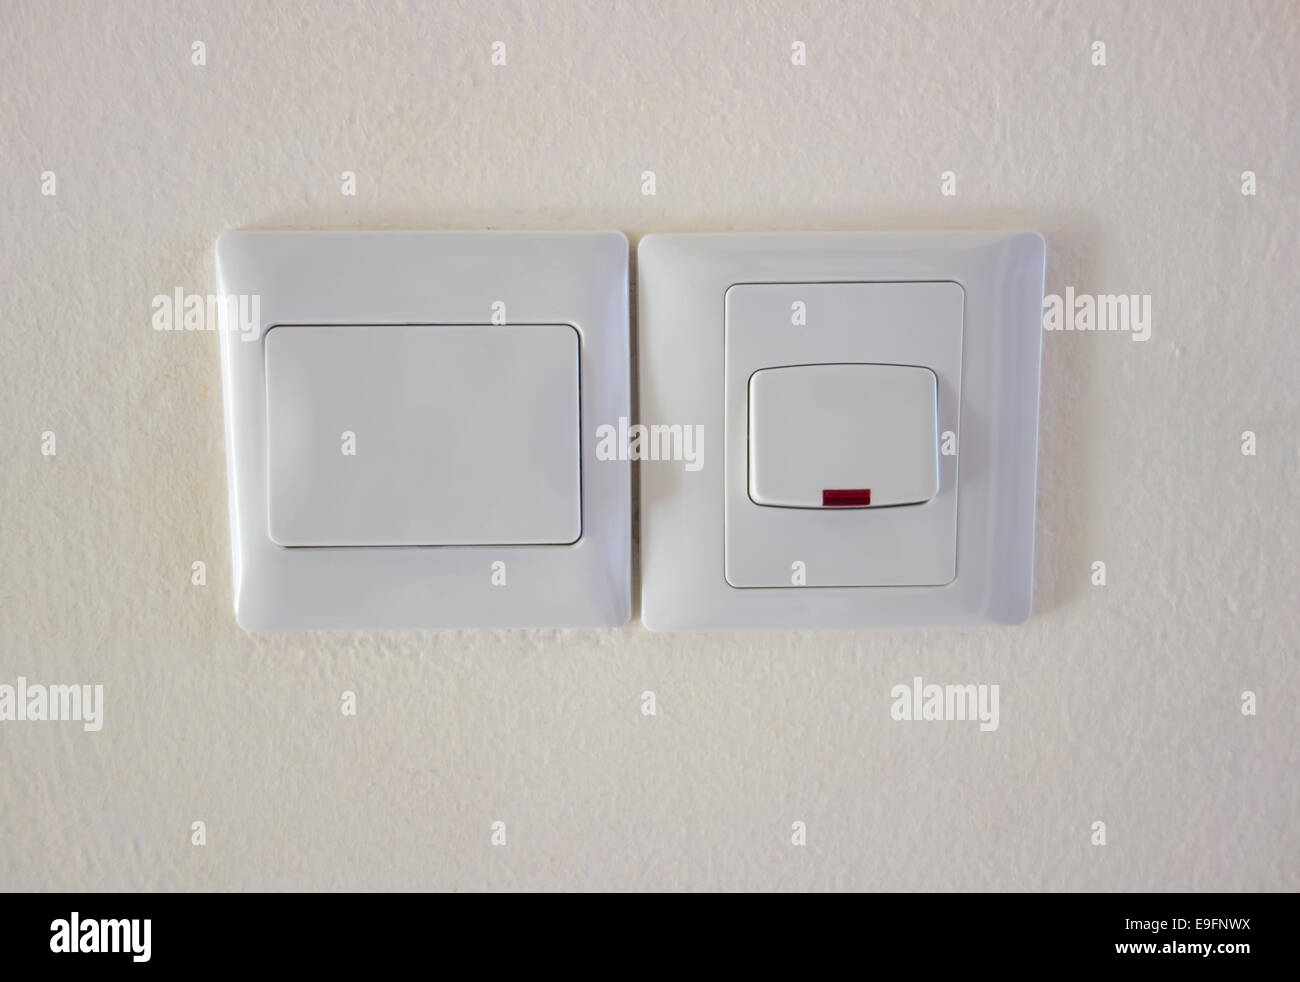 Light Switch In Off Position Stock Photos & Light Switch In Off ...